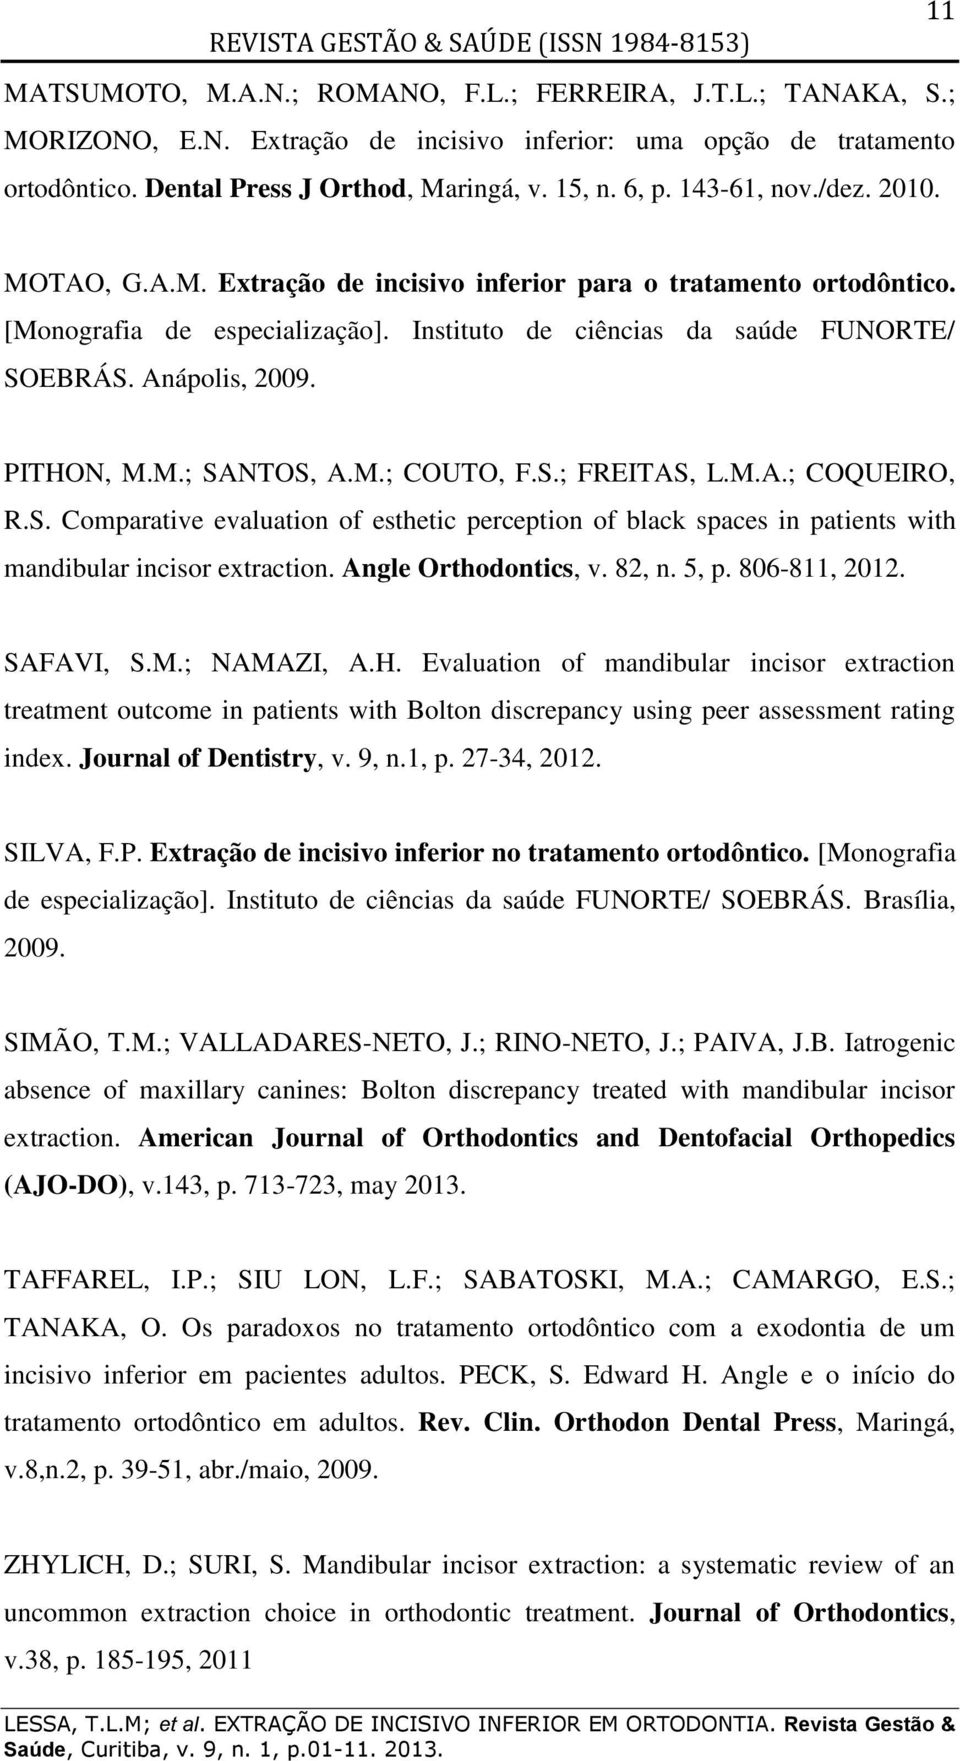 PITHON, M.M.; SANTOS, A.M.; COUTO, F.S.; FREITAS, L.M.A.; COQUEIRO, R.S. Comparative evaluation of esthetic perception of black spaces in patients with mandibular incisor extraction.